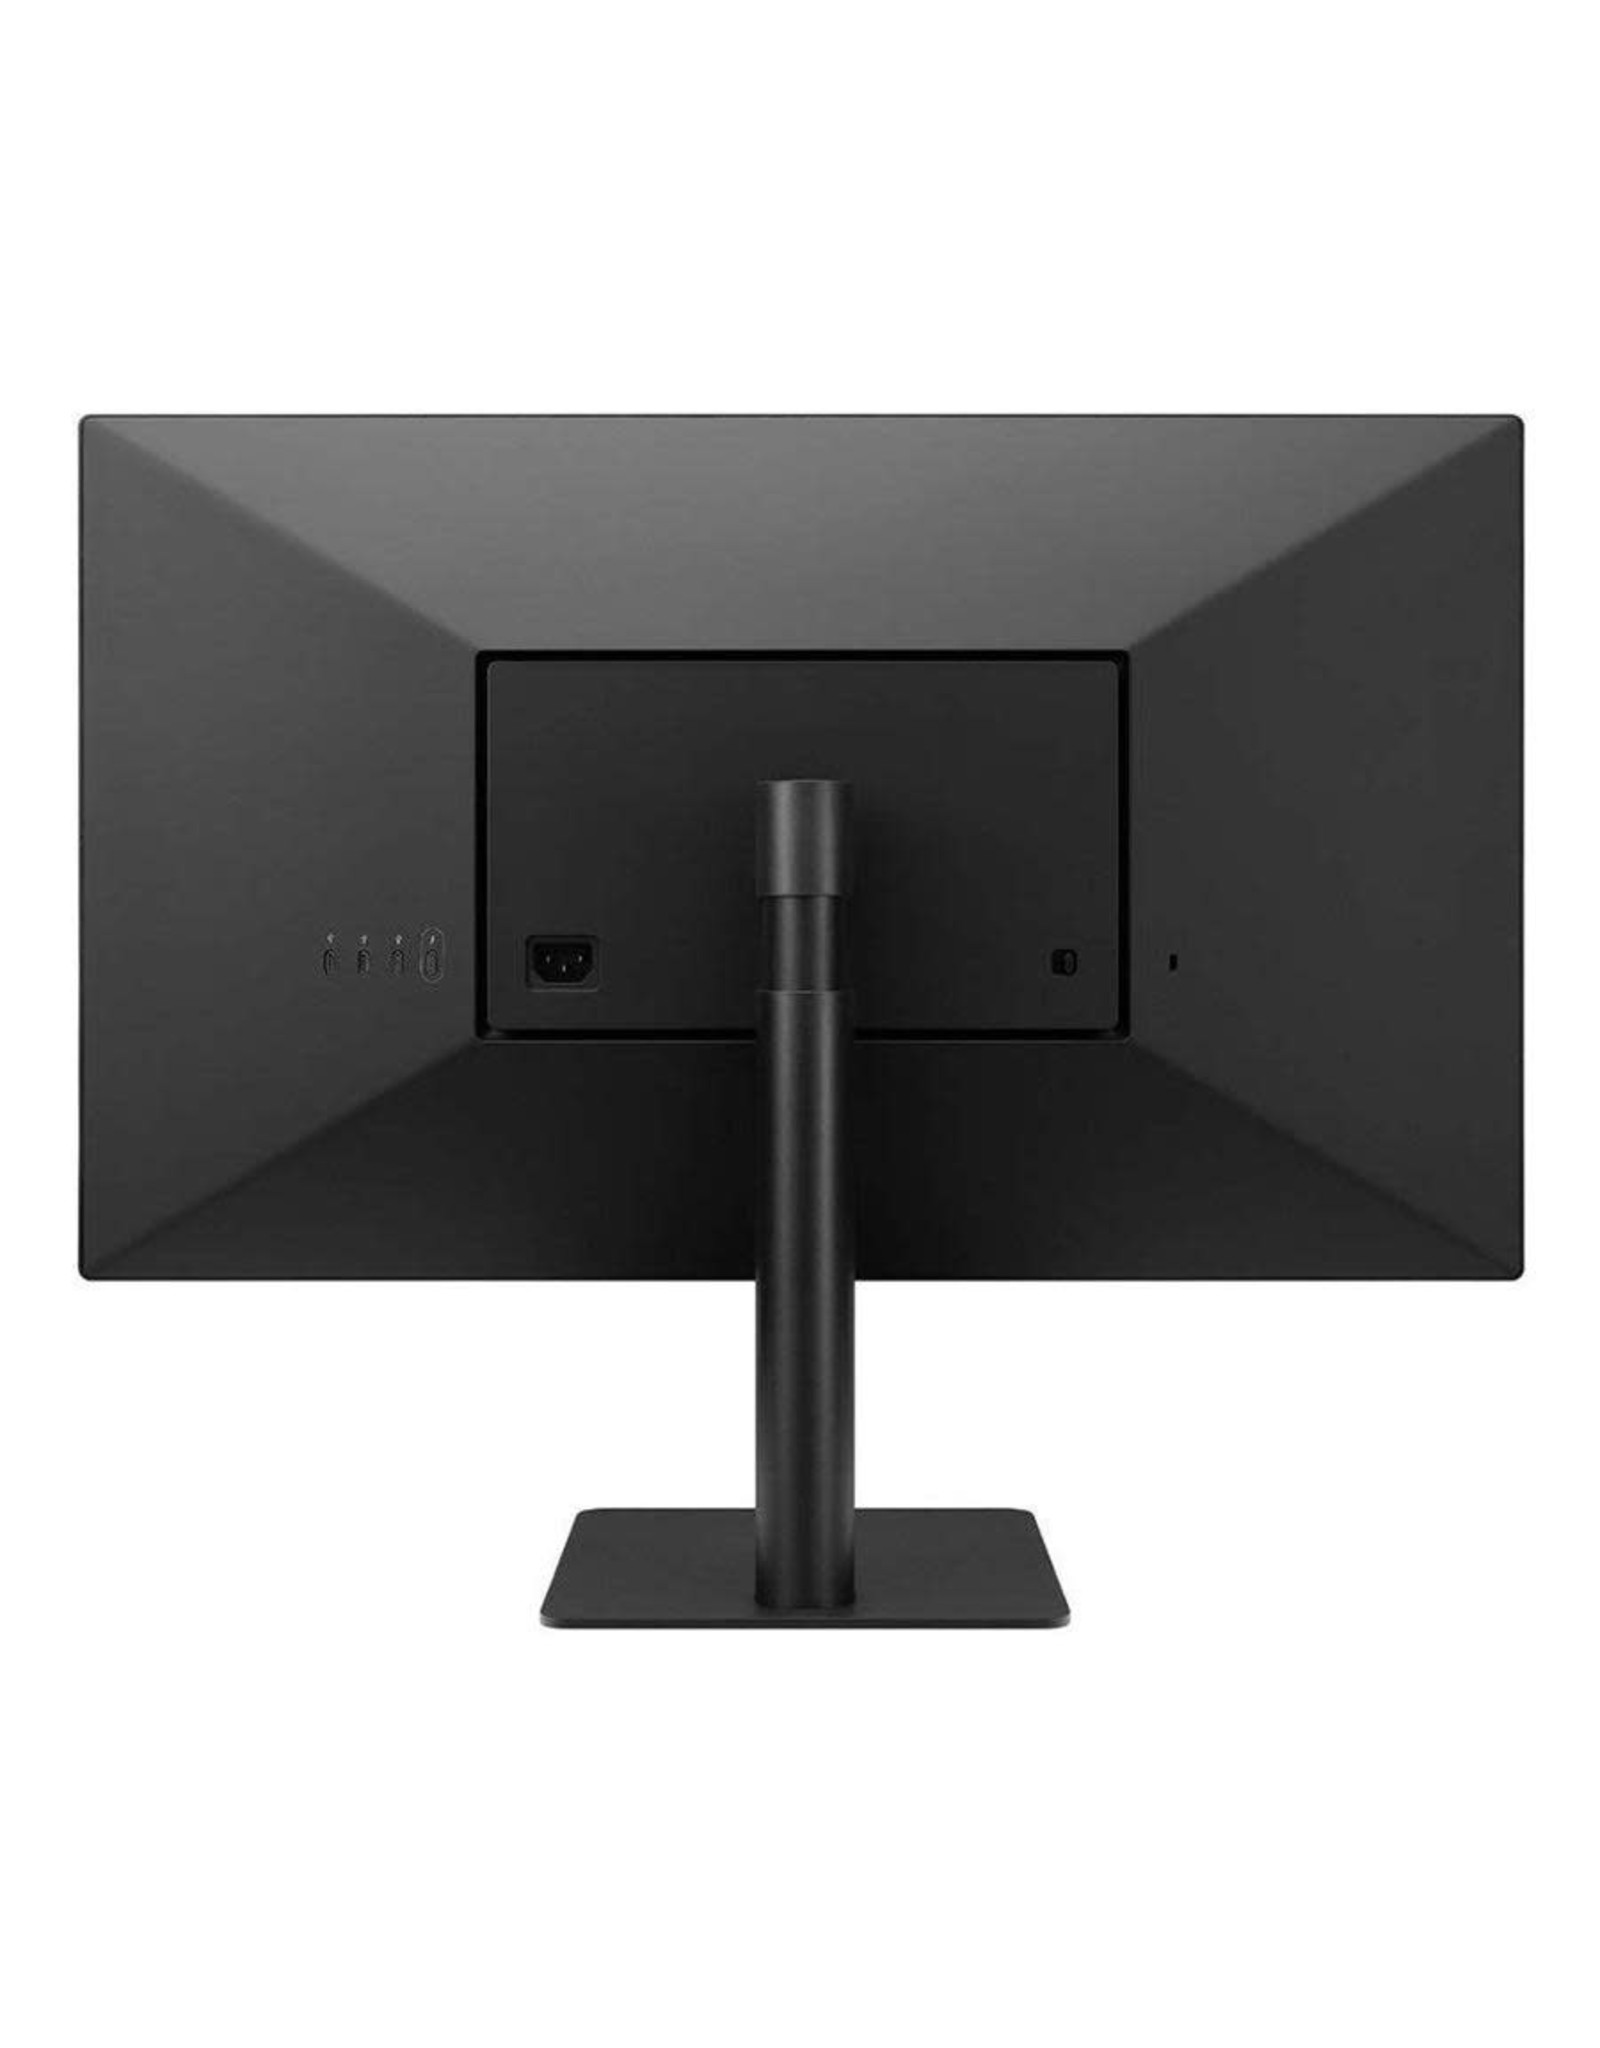 "LG LG 27"" UltraFine 5K (5120 x 2880) Display - Thunderbolt 3, USB-C, 2x5W Stereo Speakers, Camera, Microphone, Height and Tilt Adust, VESA"